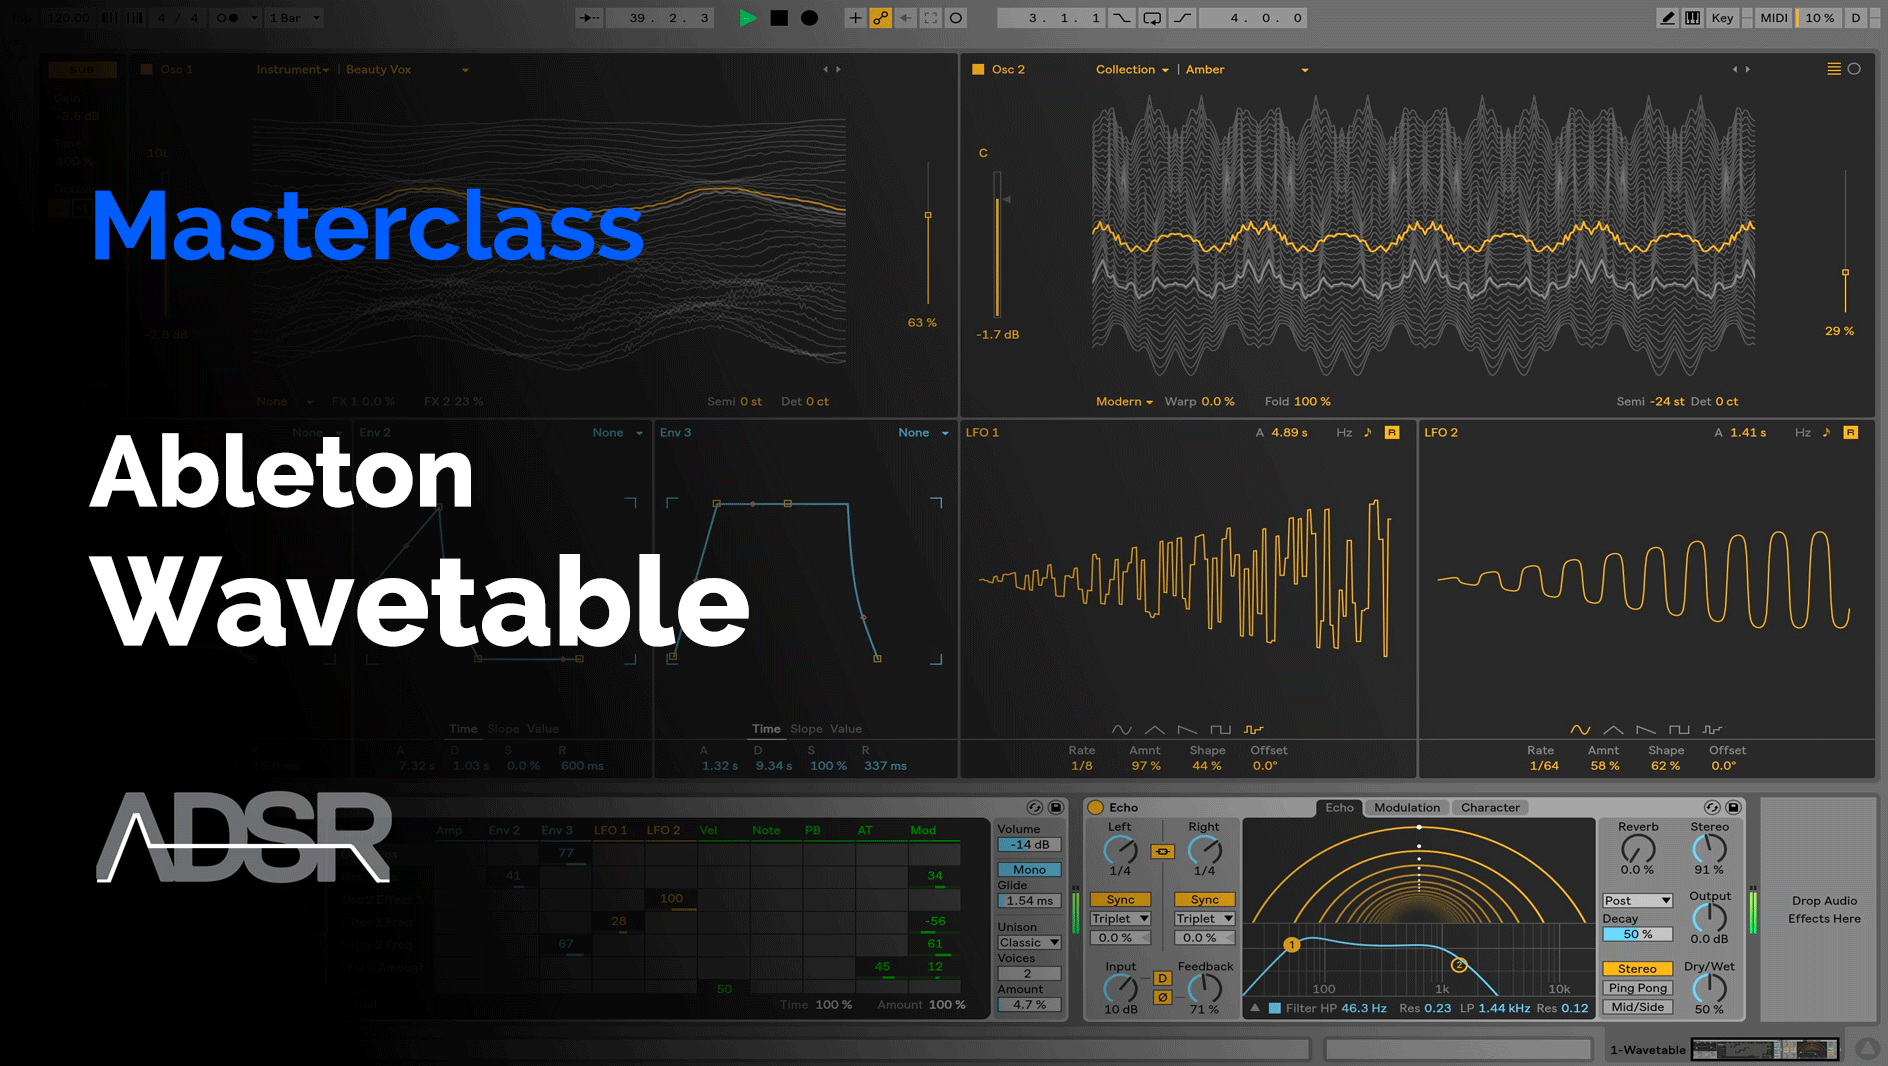 Ableton Wavetable Masterclass